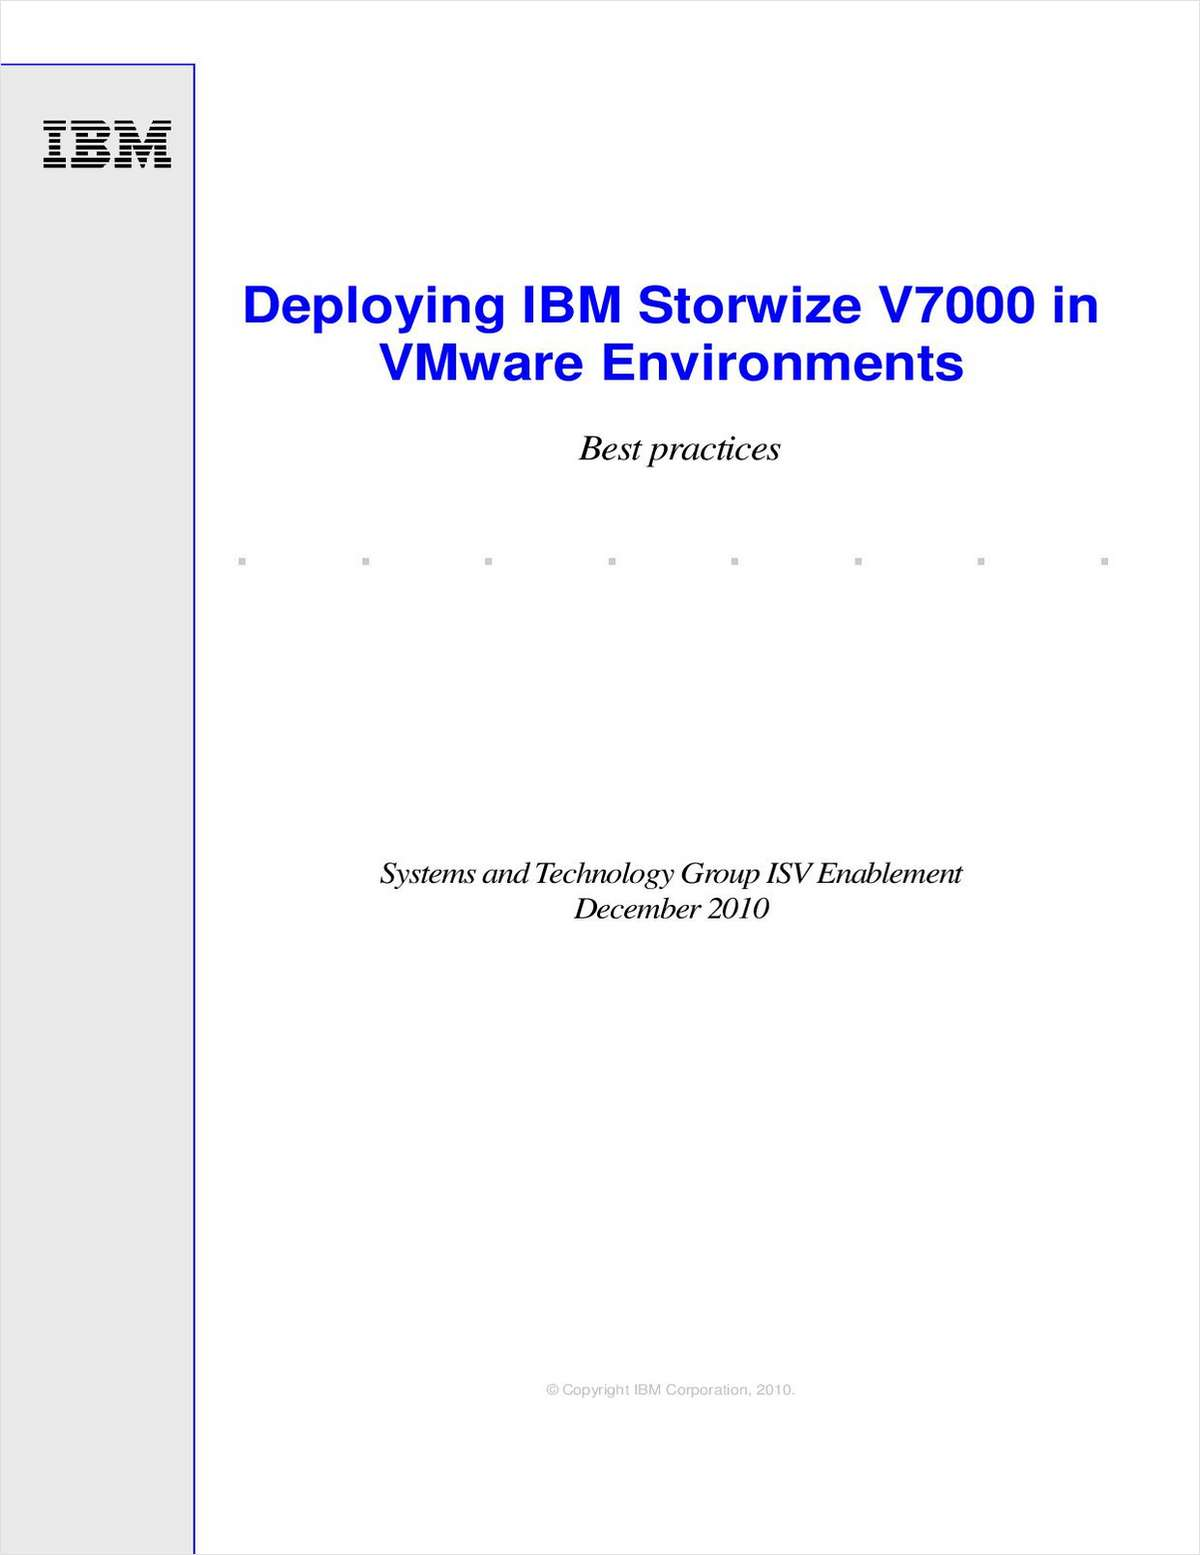 Deploying IBM® Storwize® V7000 in VMware Environments